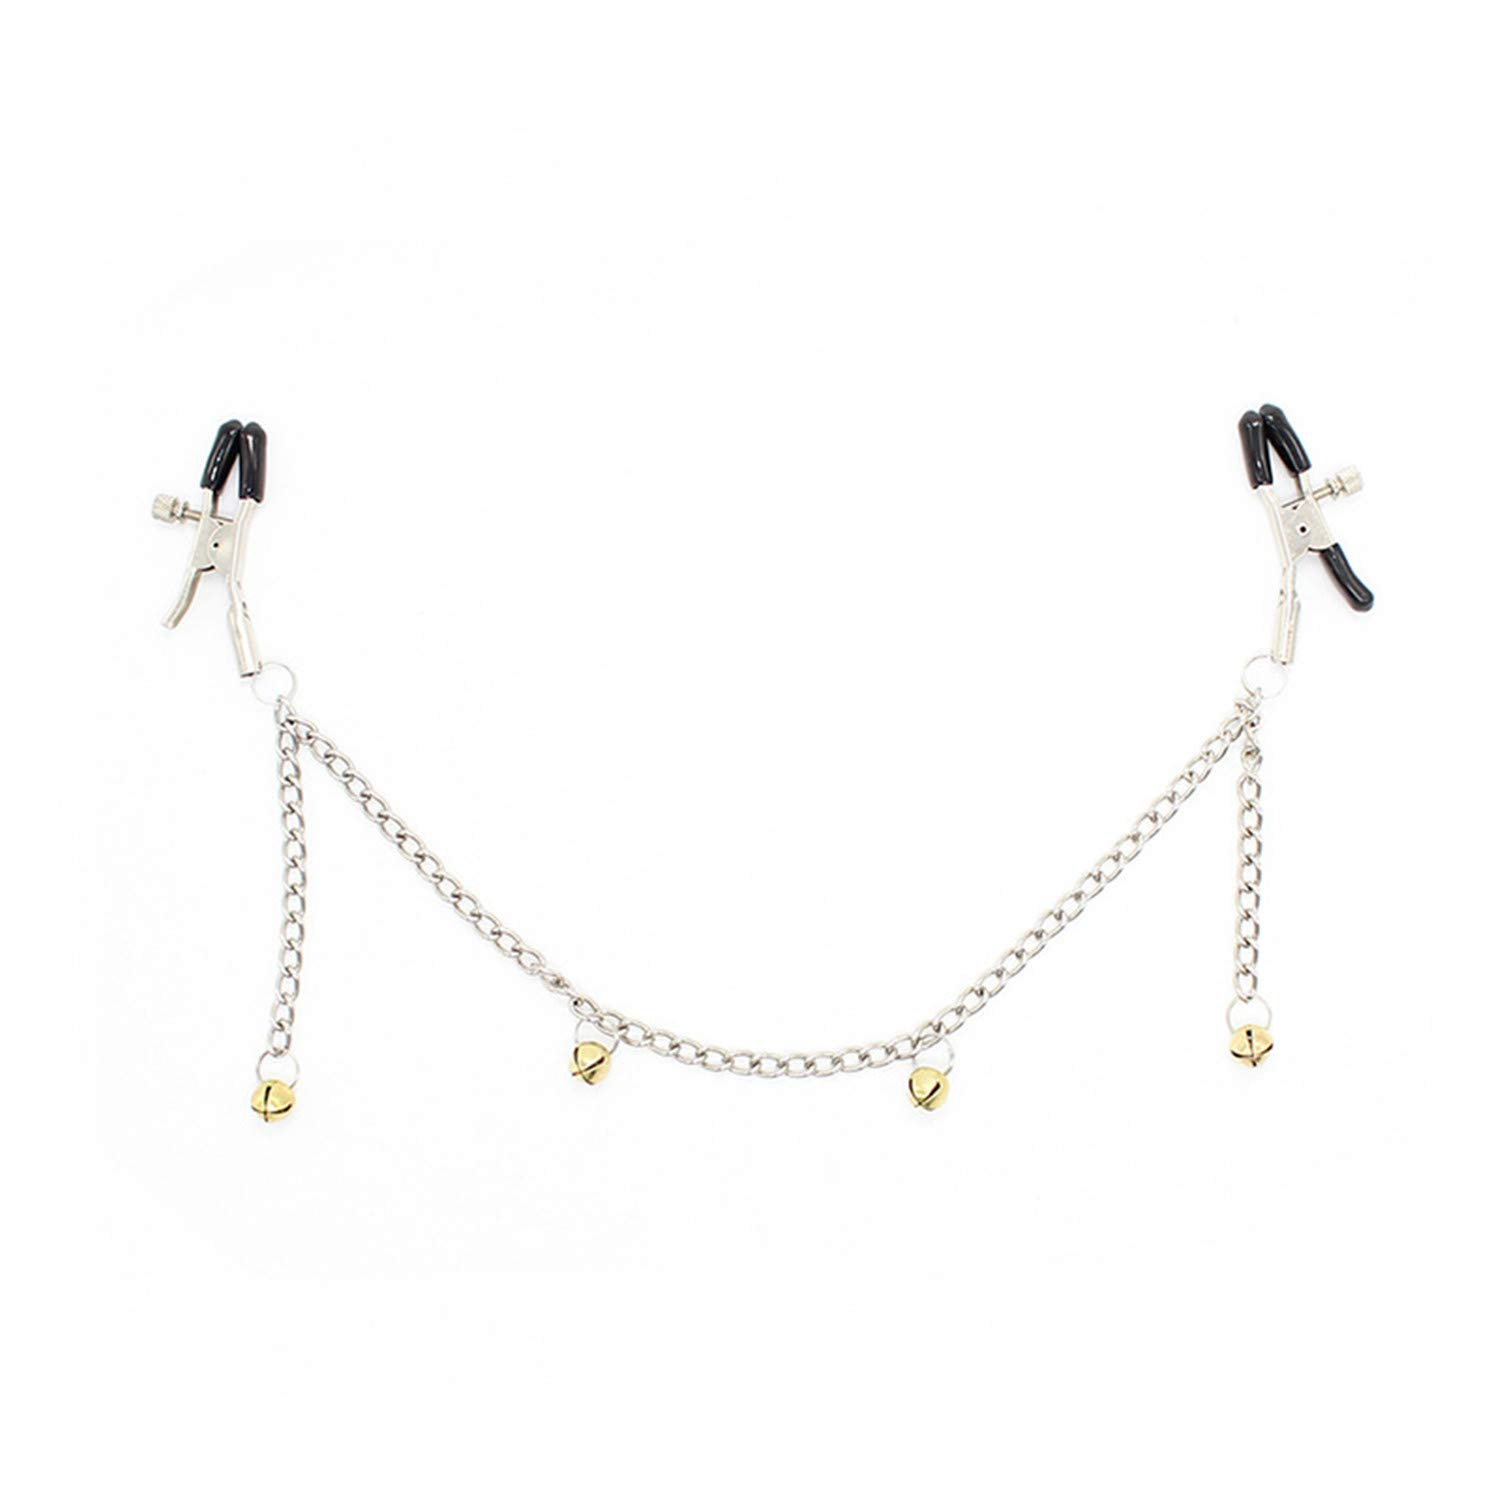 CHAOYIFANG Wonderful Stainless Steel Chains Metal Female Breast Nipple Clamps with Chain Clips Stimulator zqknpd6796405